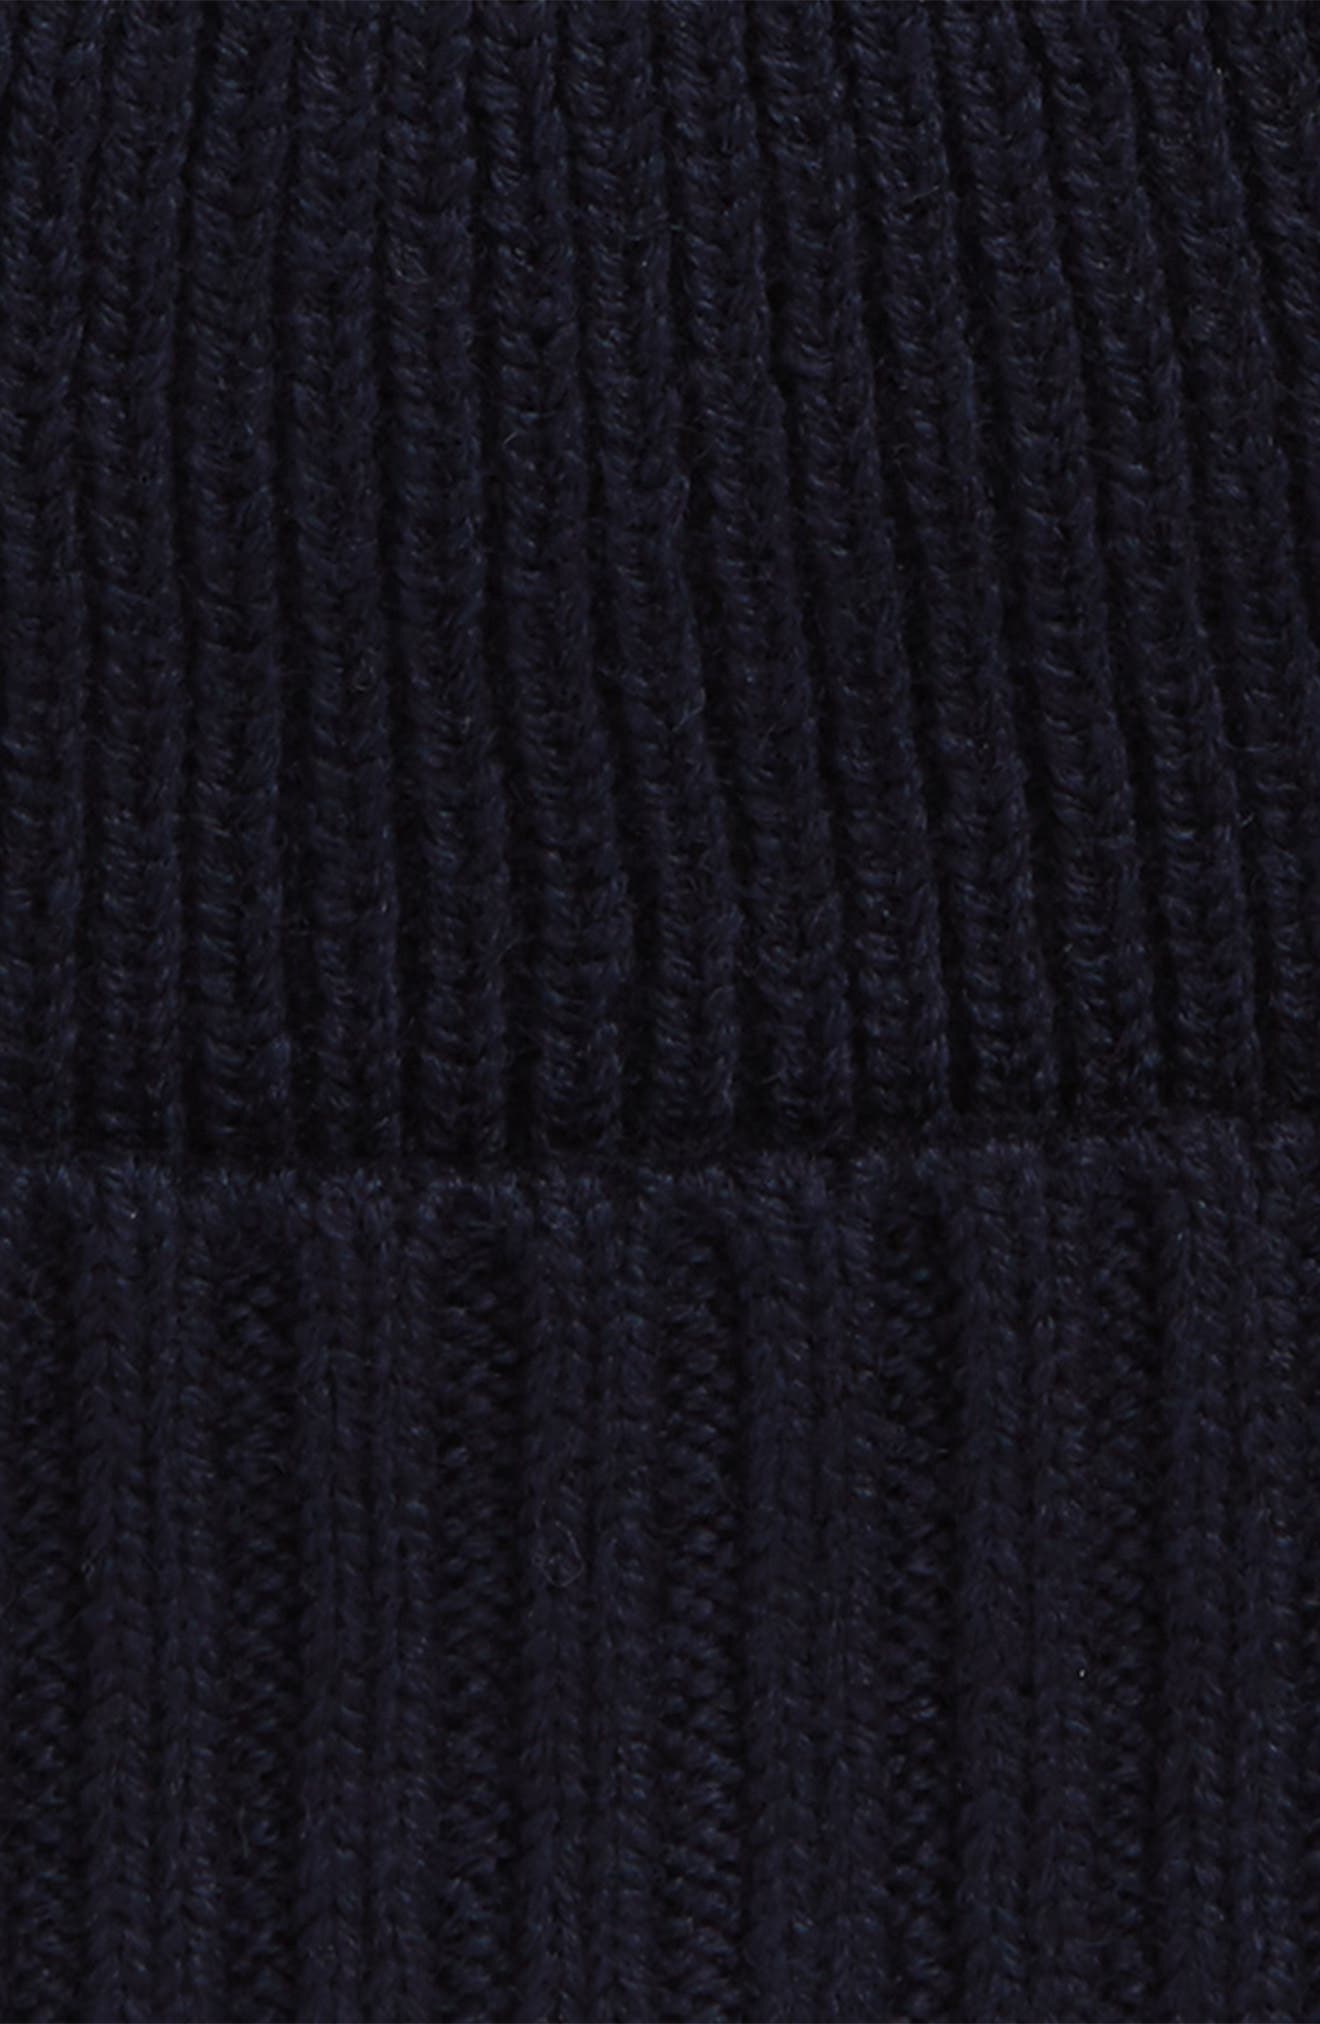 C-Fati Beanie,                             Alternate thumbnail 8, color,